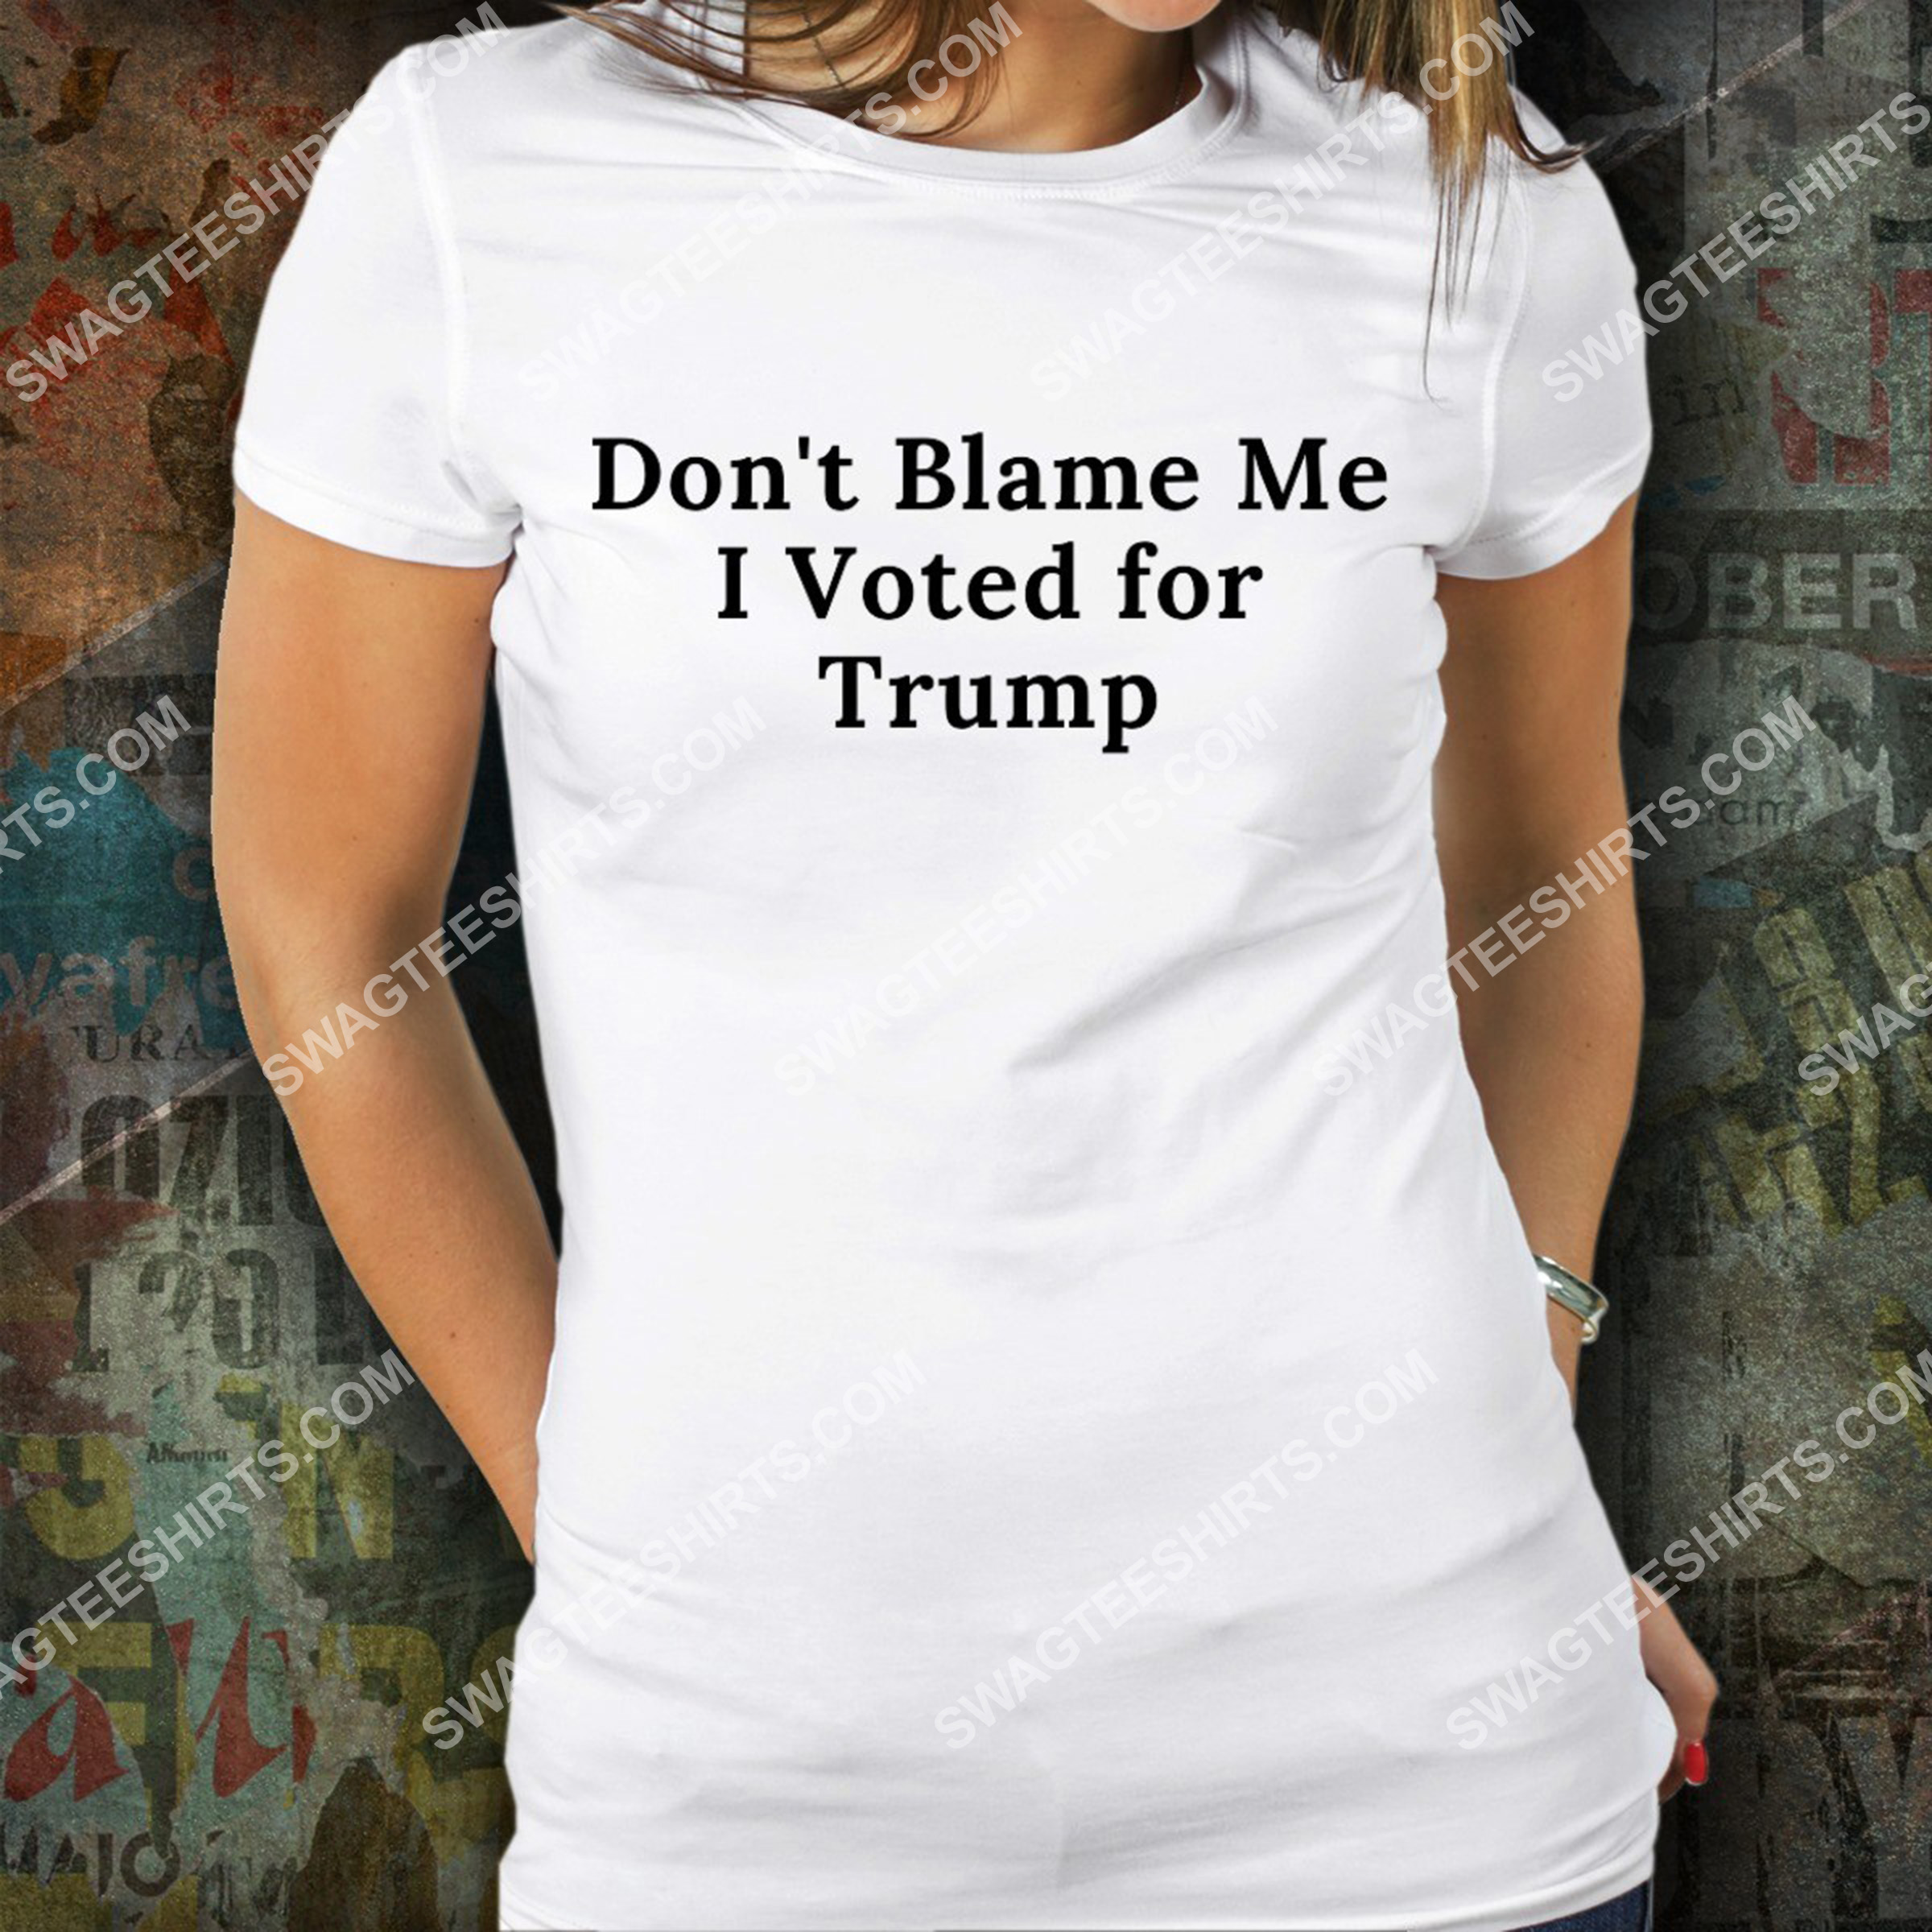 don't blame me i voted for trump shirt 3(1)